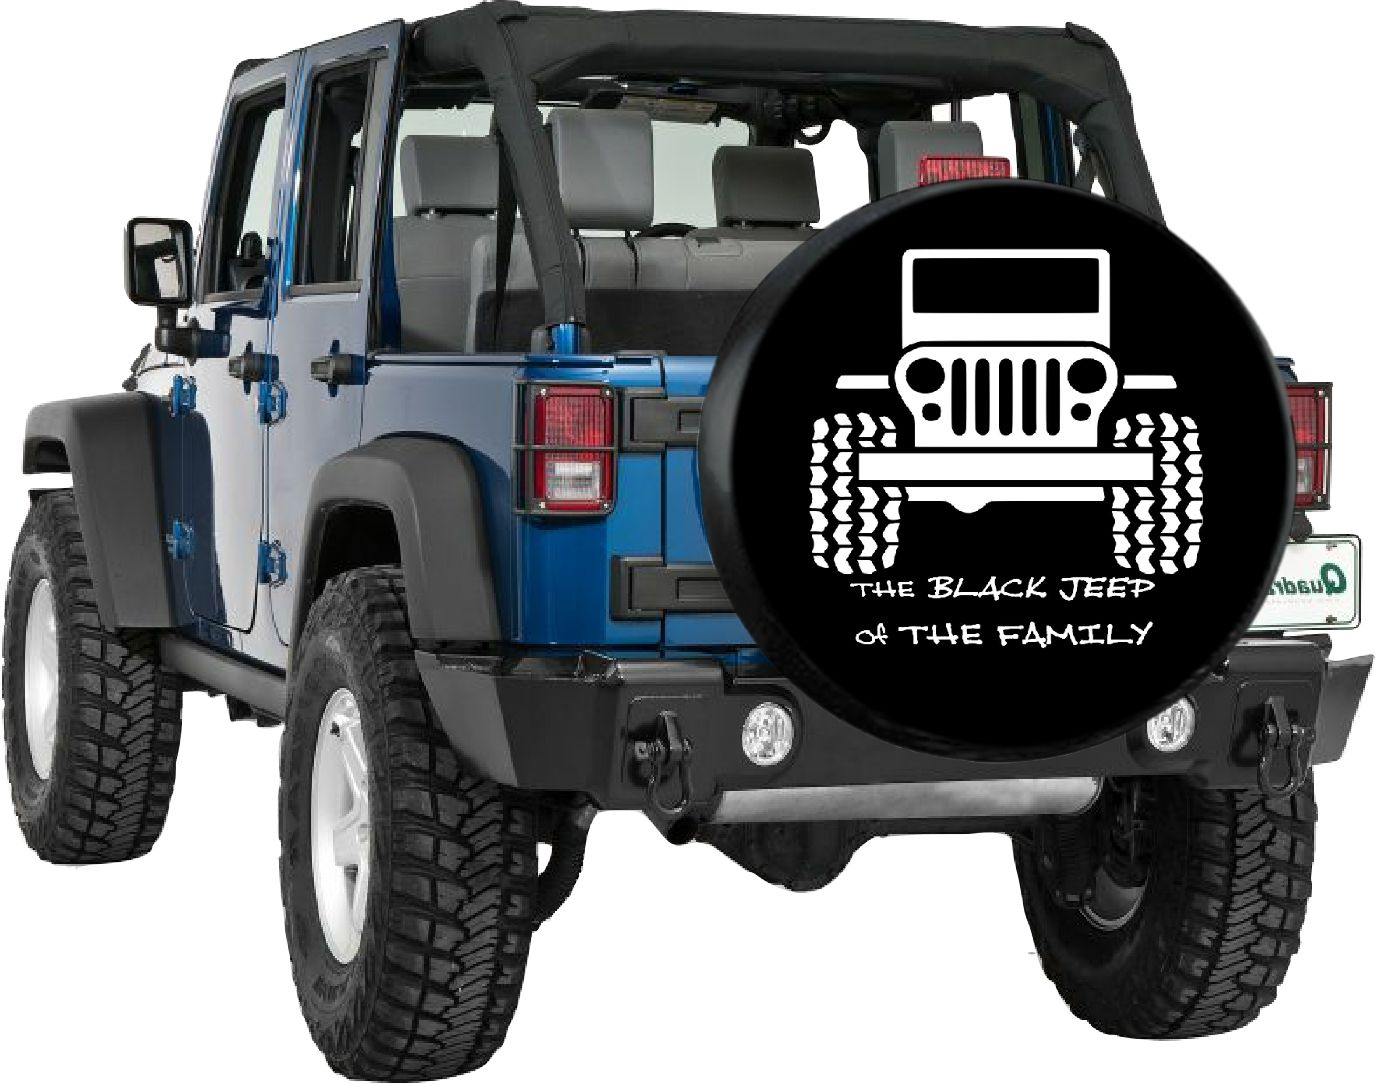 The Black Jeep Of The Family Tire Cover Www Tirecoversale Com